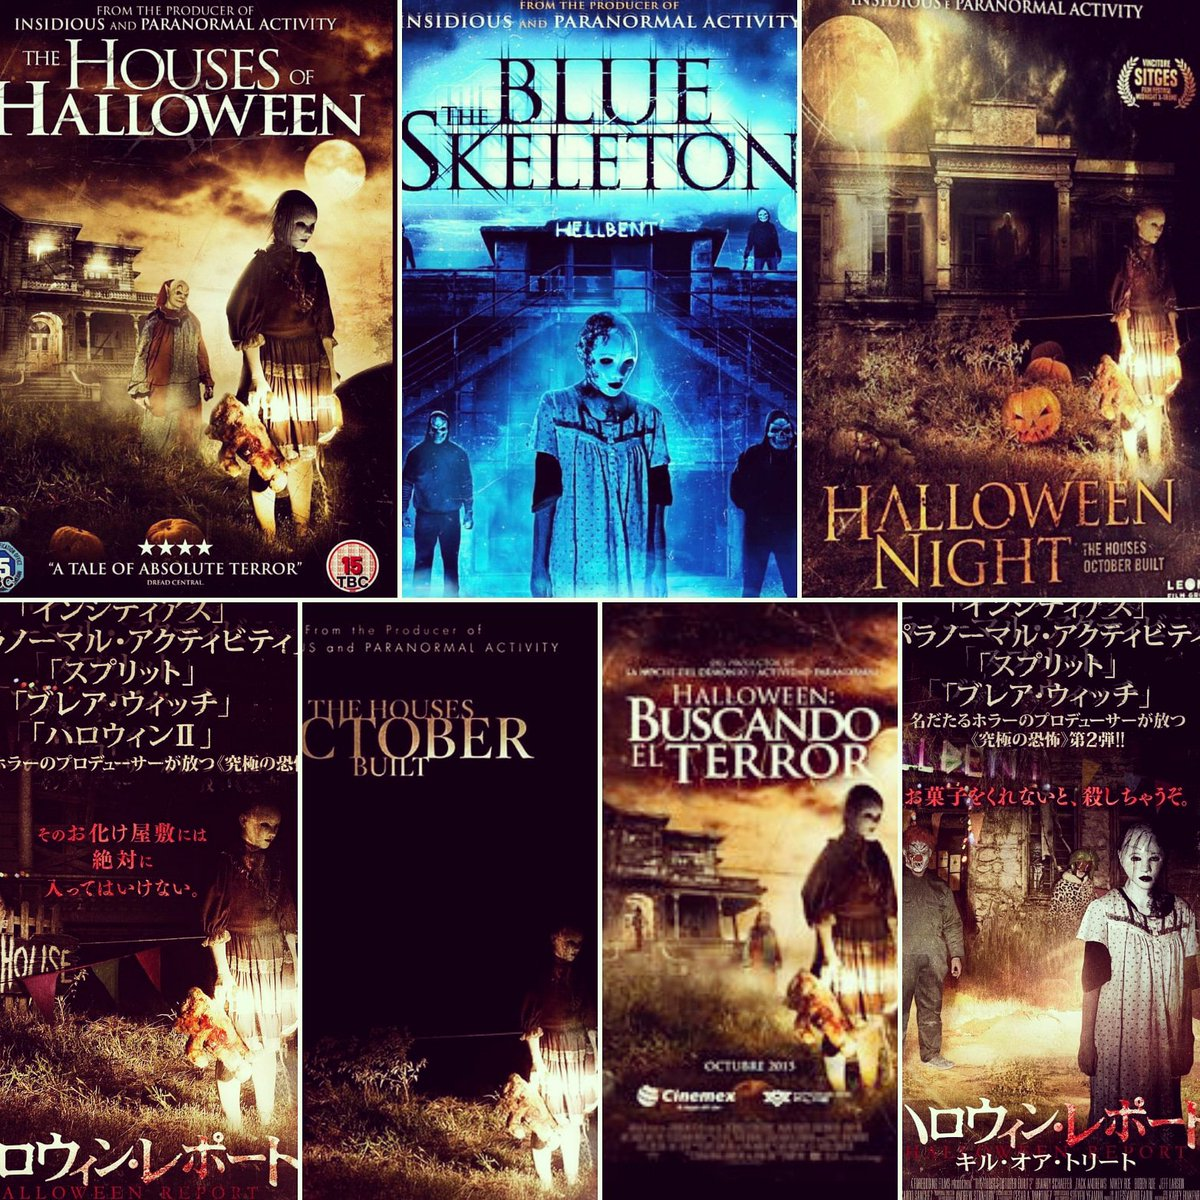 Here are some of the international posters and different titles changes from around the world of #TheHousesOctoberBuilt & #TheHousesOctoberBuilt2 #TheBlueSkeleton #HousesofHalloween #Halloween